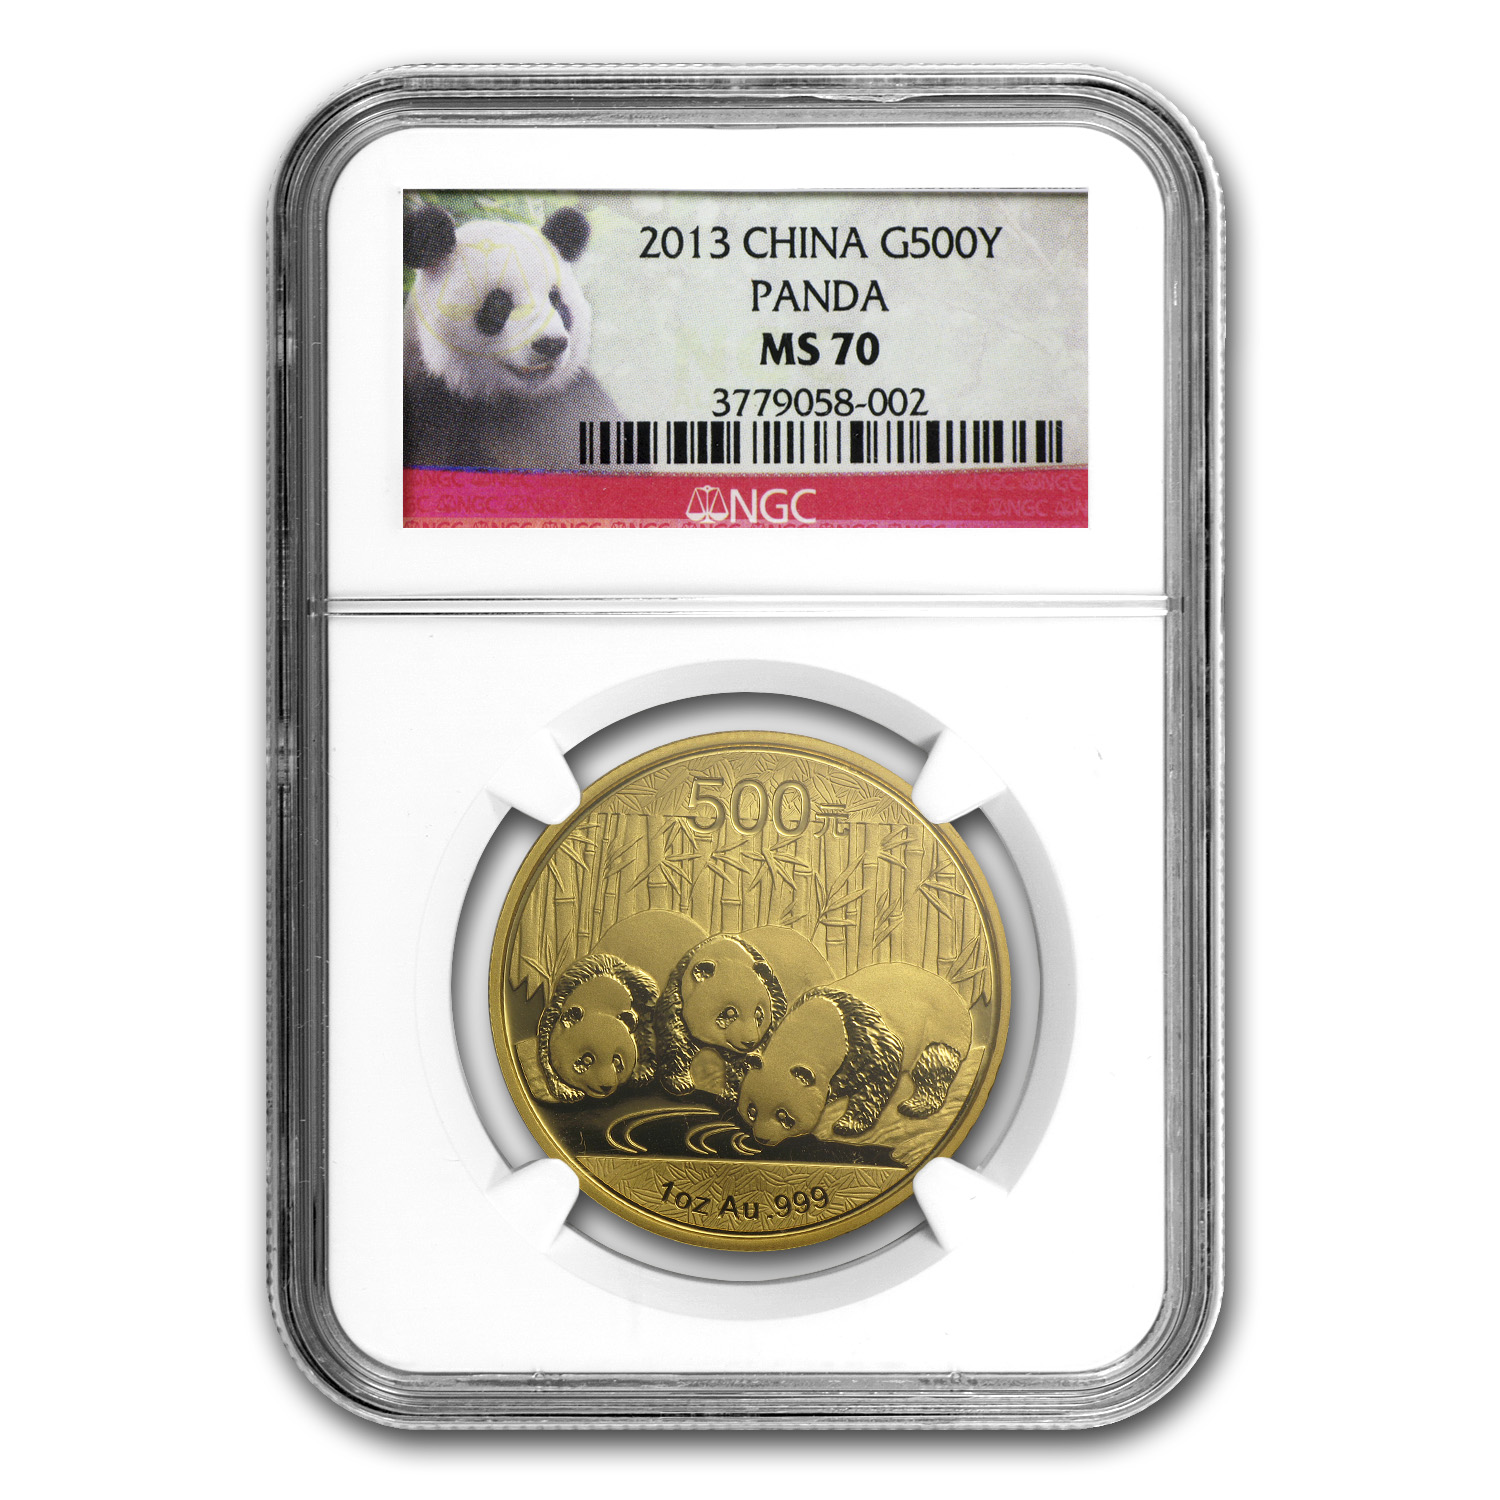 2013 China 1 oz Gold Panda MS-70 NGC